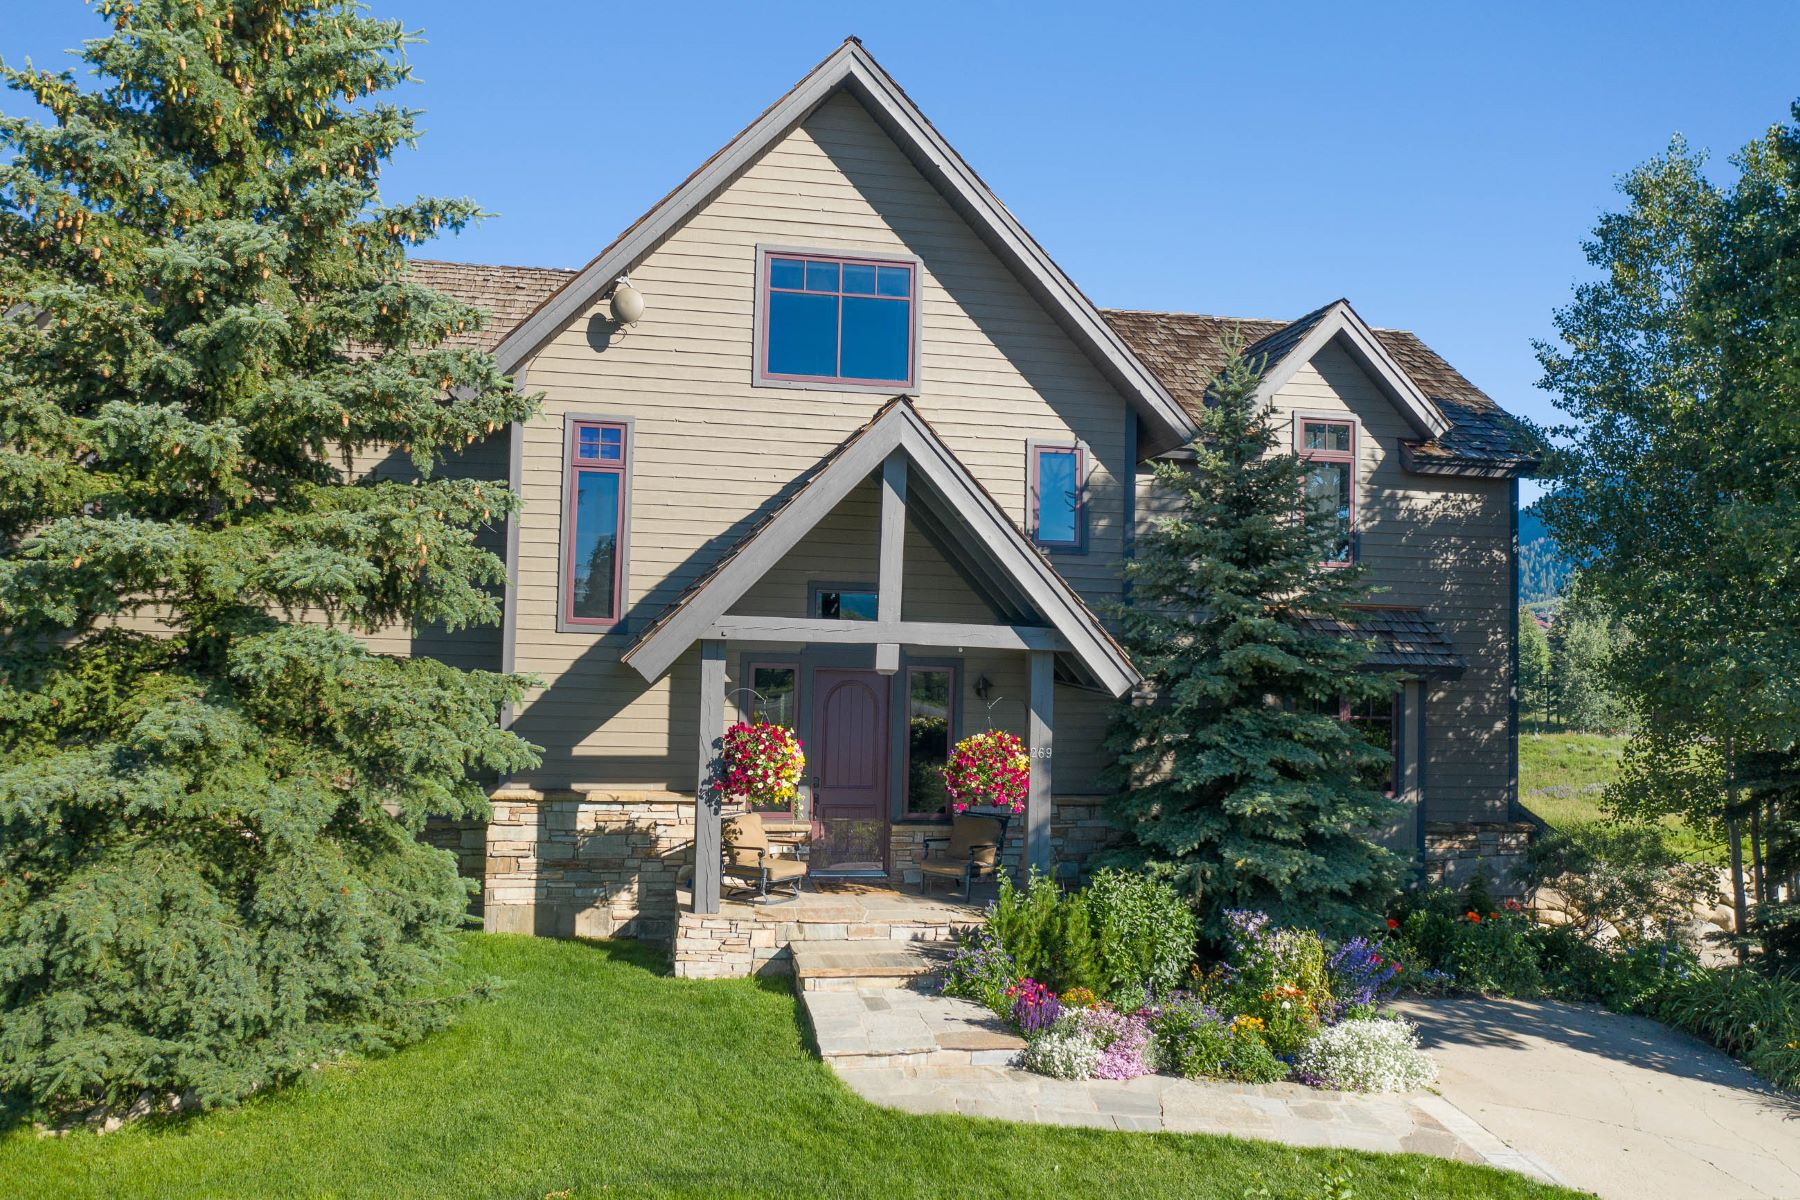 Single Family Homes for Sale at 269 Fairway Drive Crested Butte, Colorado 81224 United States